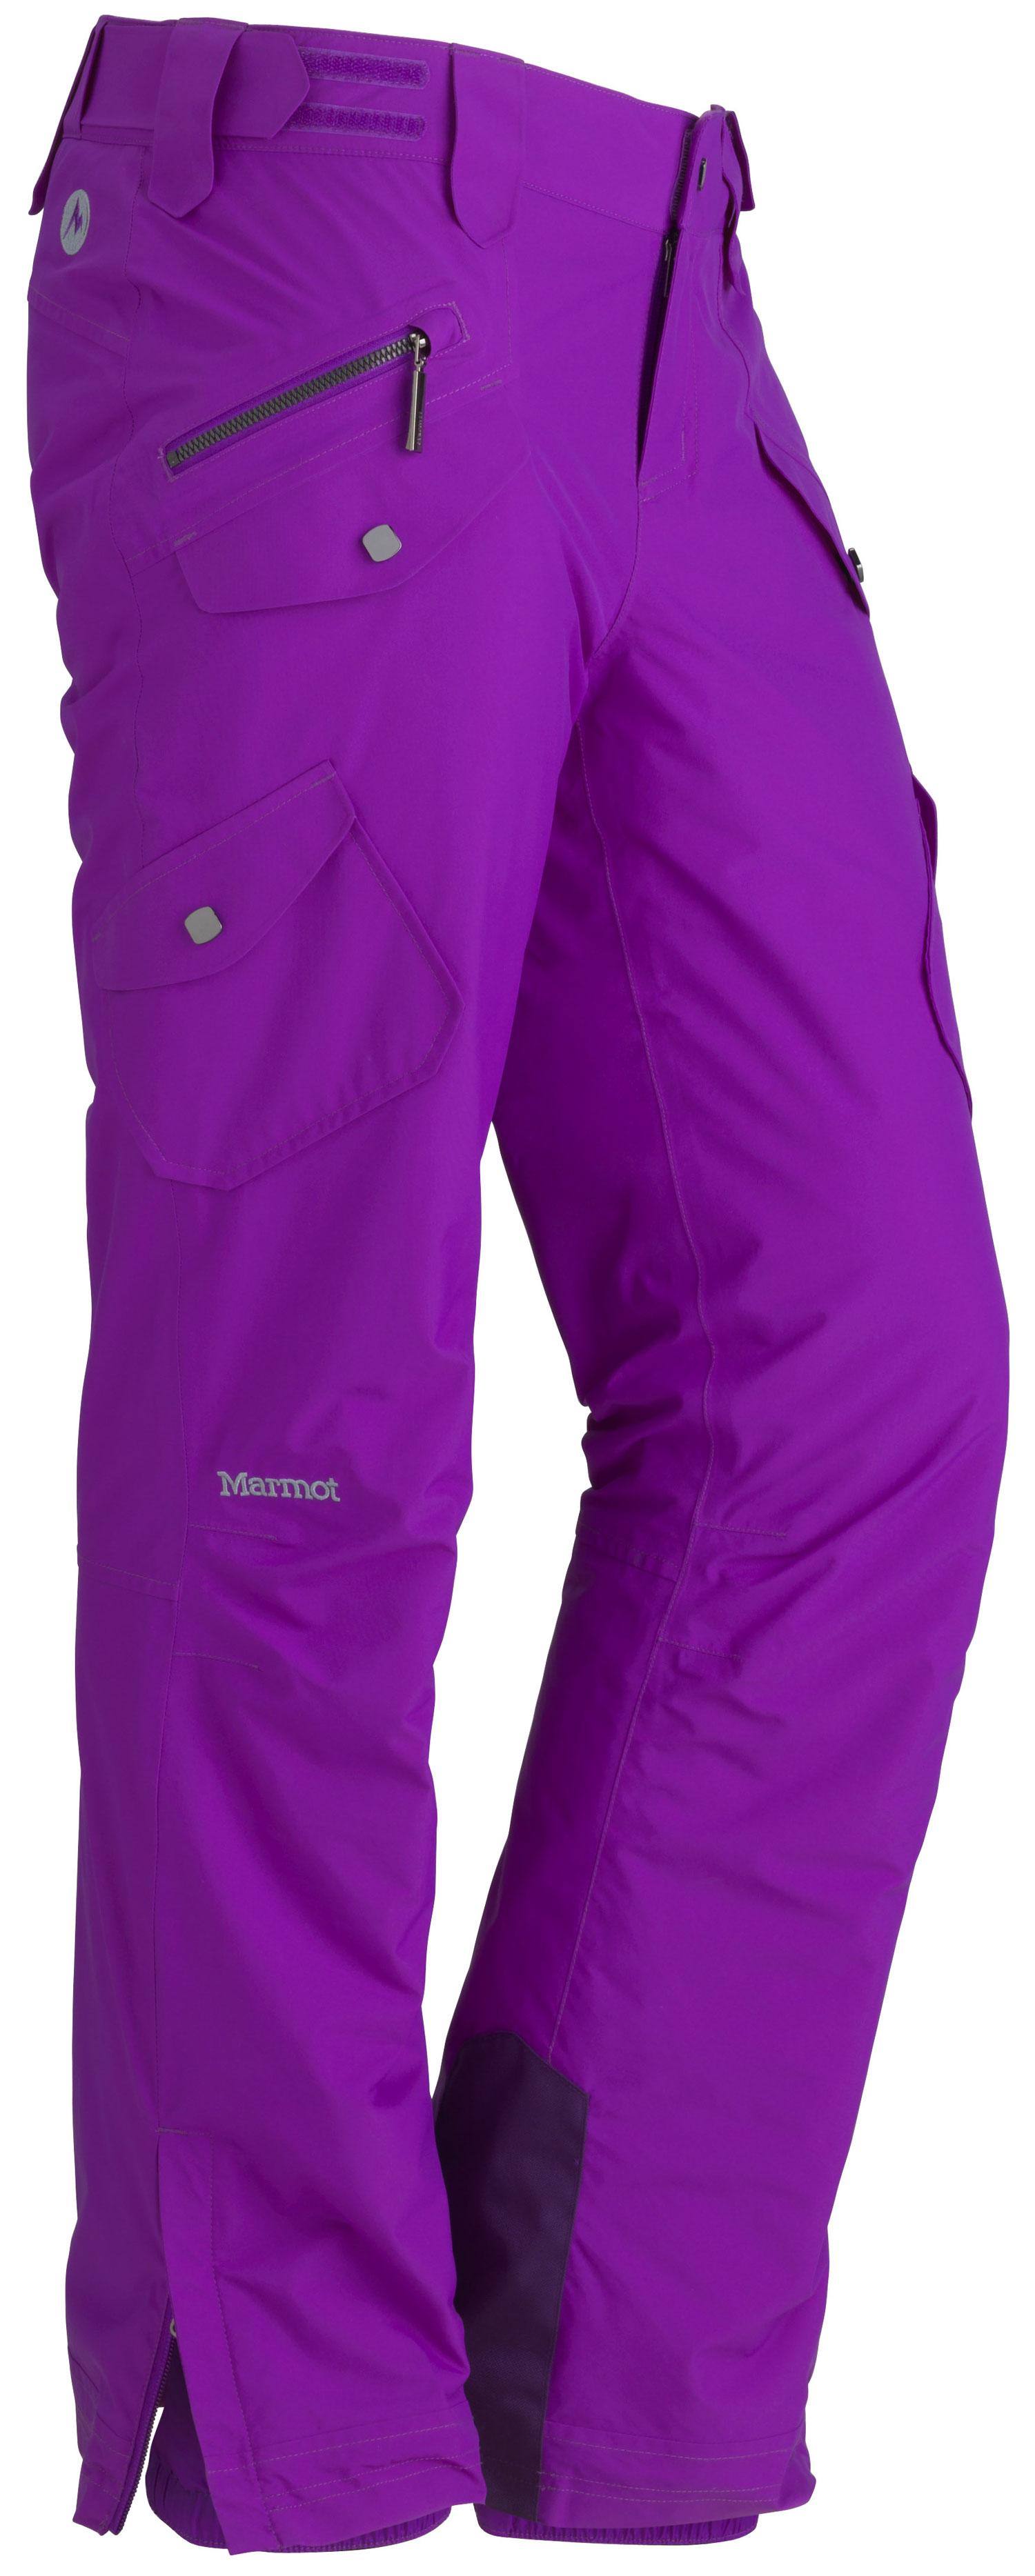 Ski Lead the Divine to powder and watch the hard-charging pant shred it. The trim-fitting, waterproof snow pant has MemBrain two-layer construction, zippered leg vents and internal gaiters that take care of business. A boot cut, flapped cargo pockets and low-rise front handle the style details.Key Features of the Marmot Divine Ski Pants: Marmot MemBrain® Waterproof/Breathable Fabric 100% seam taped 2-layer construction Flapped Hand Pockets Flapped Cargo Pockets Inseam Zippered Leg Vents Adjustable Waist with Snap Closure and Zip Fly Reversed Brushed Tricot Seat and Thighs Internal Gaiters with Gripper Elastic Ankle Zippers Cordura® Scuff Guard - $175.00